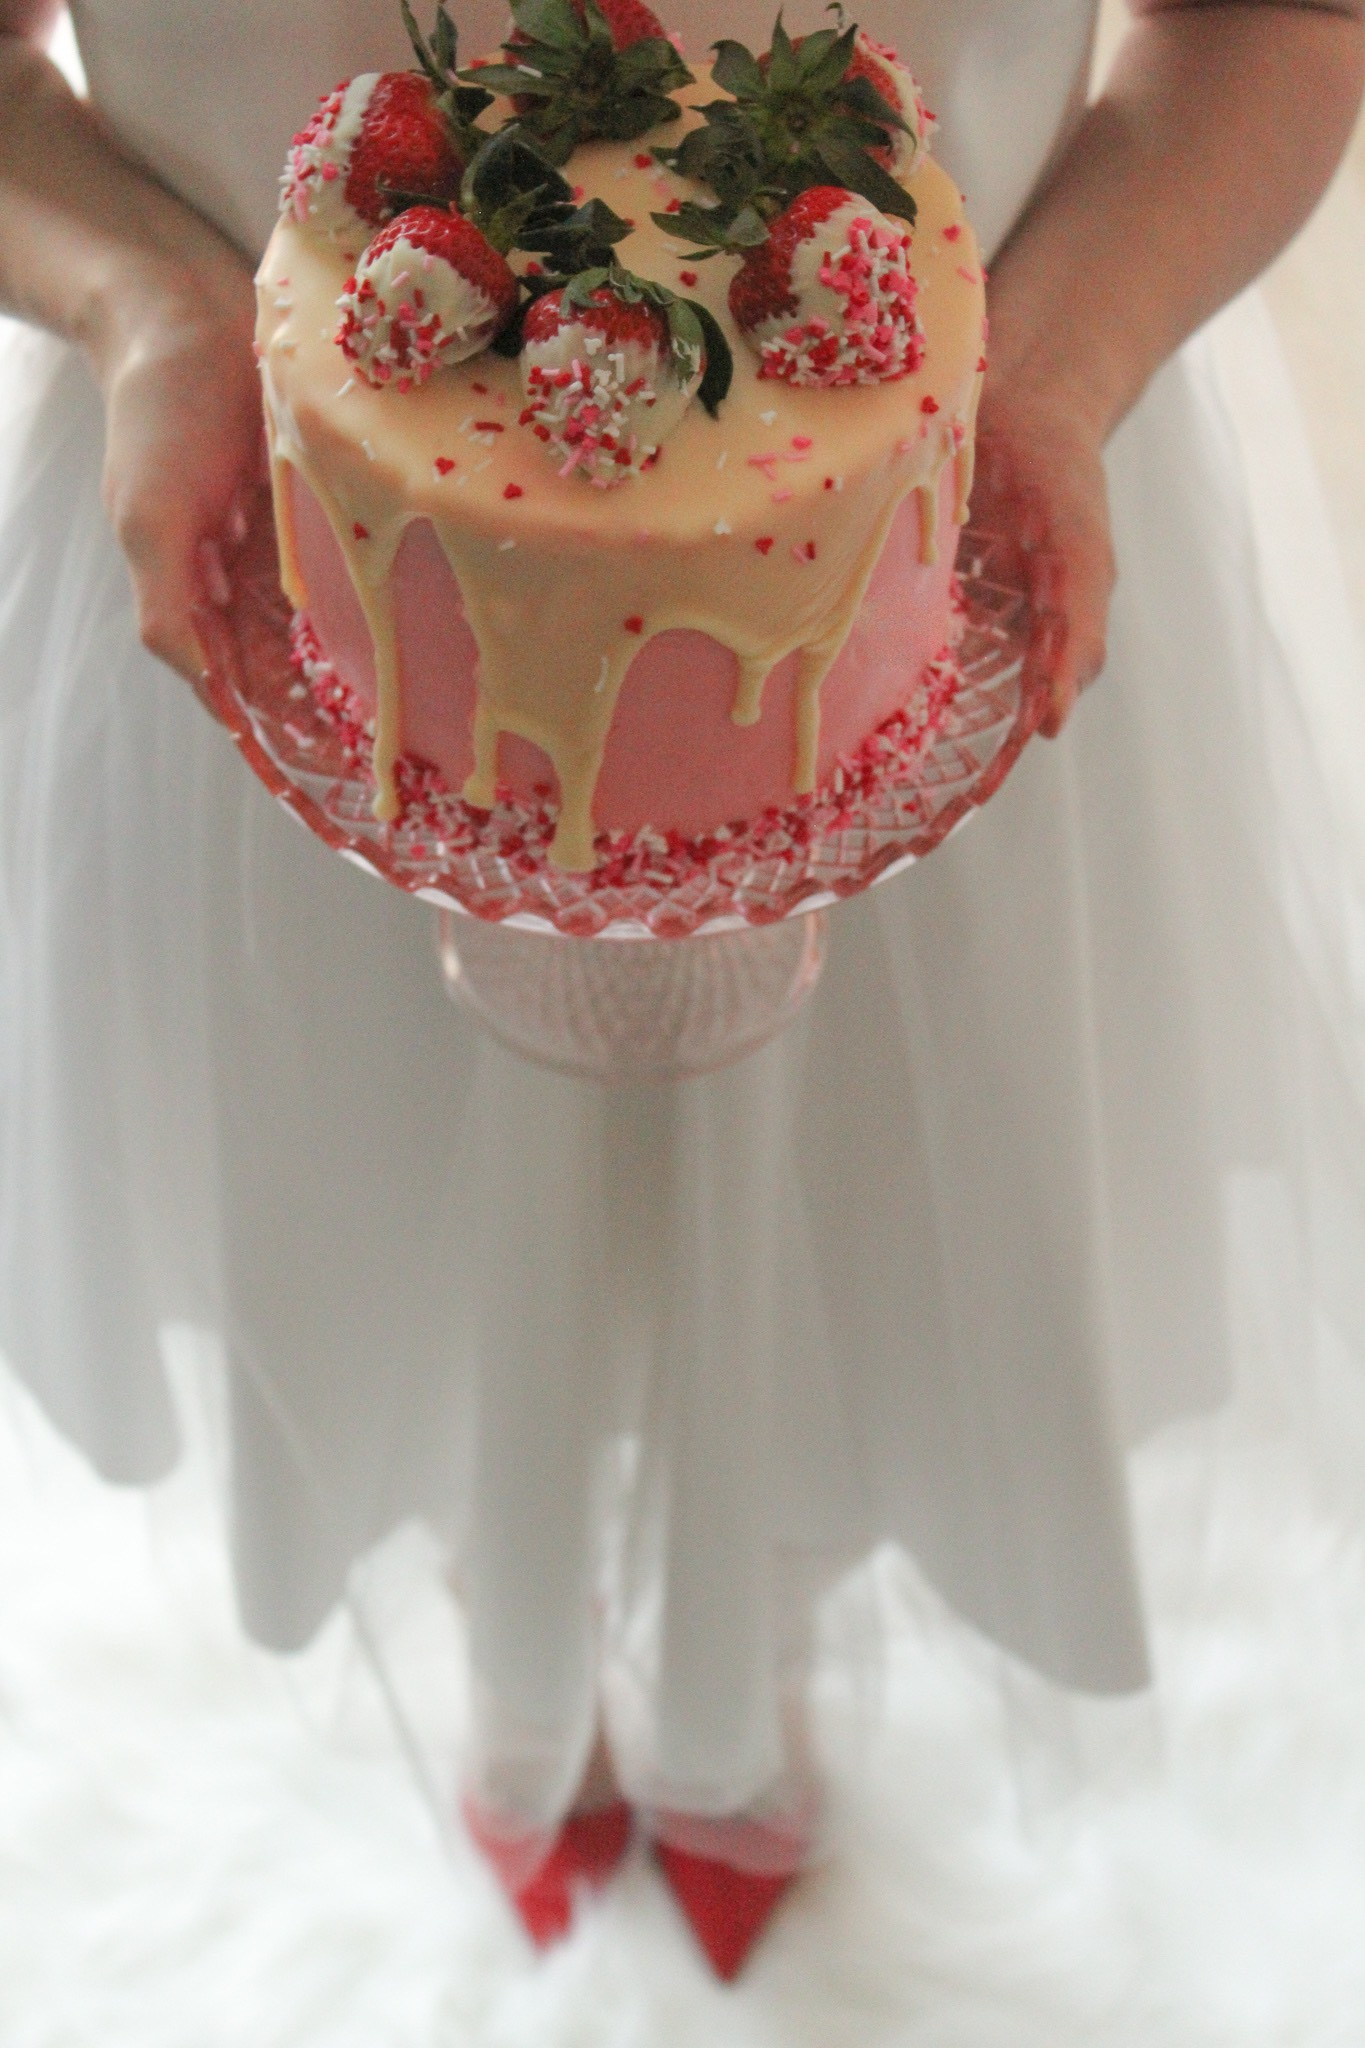 Girl in long white tutu and red heels holding a strawberry champagne cake.